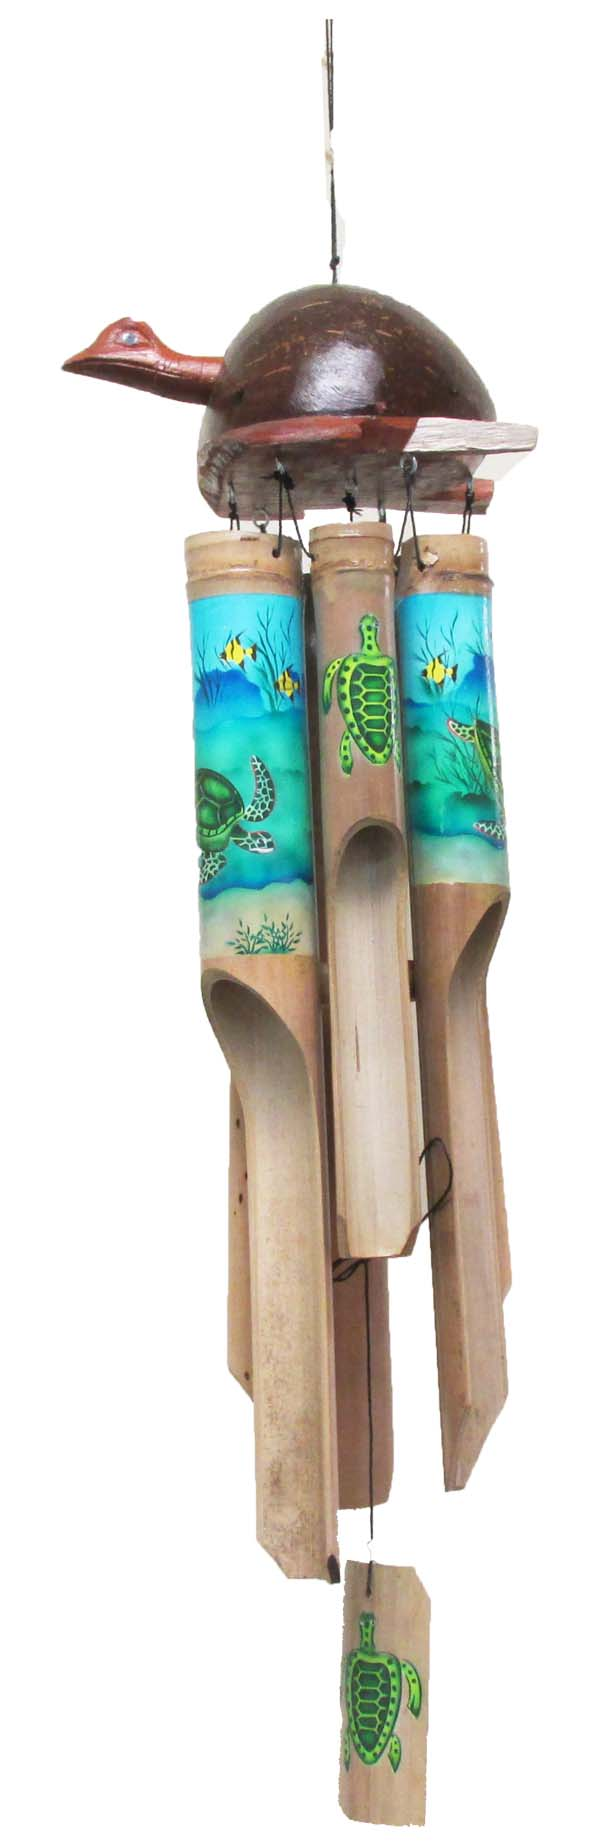 CHIME BAMBOO TURTLE TOP 40CM * UOM: PC * Minimum Order:4